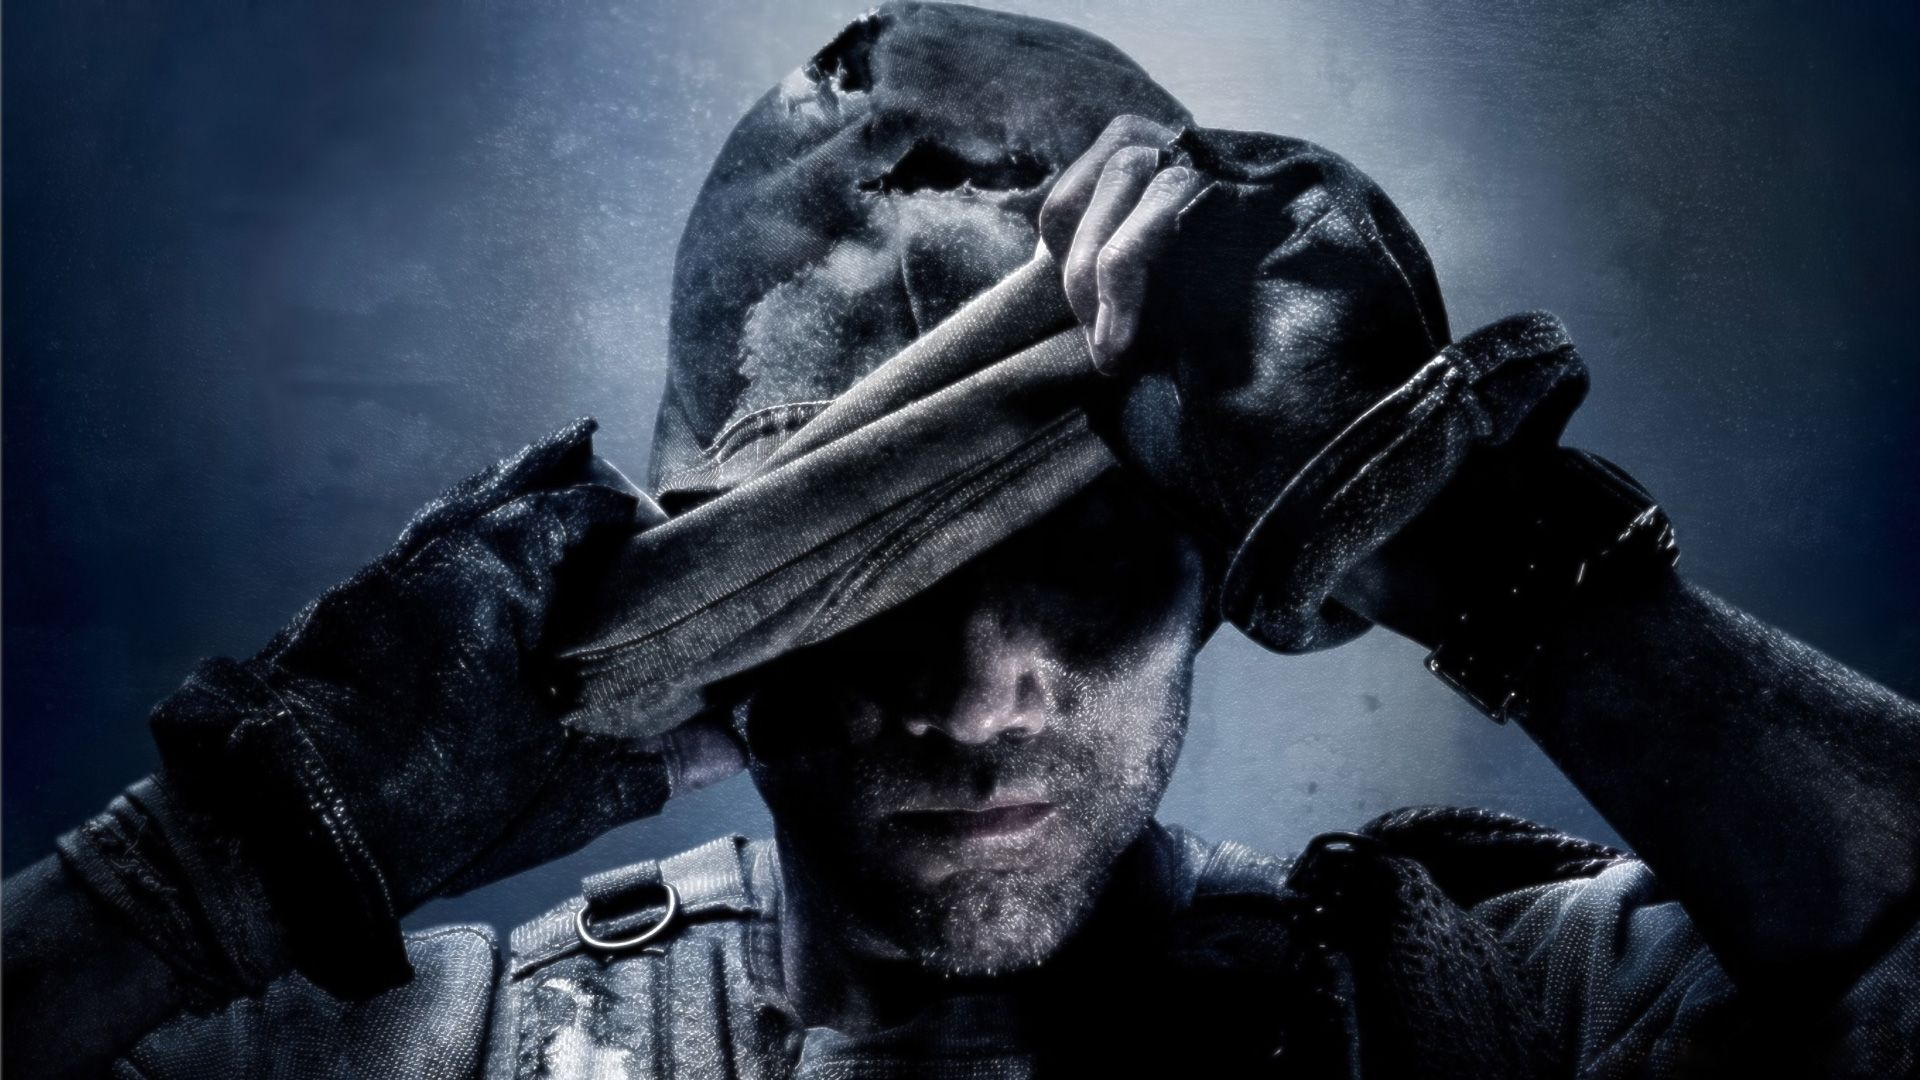 call of duty ghosts hd wallpapers collection | hd wallpapers 3d